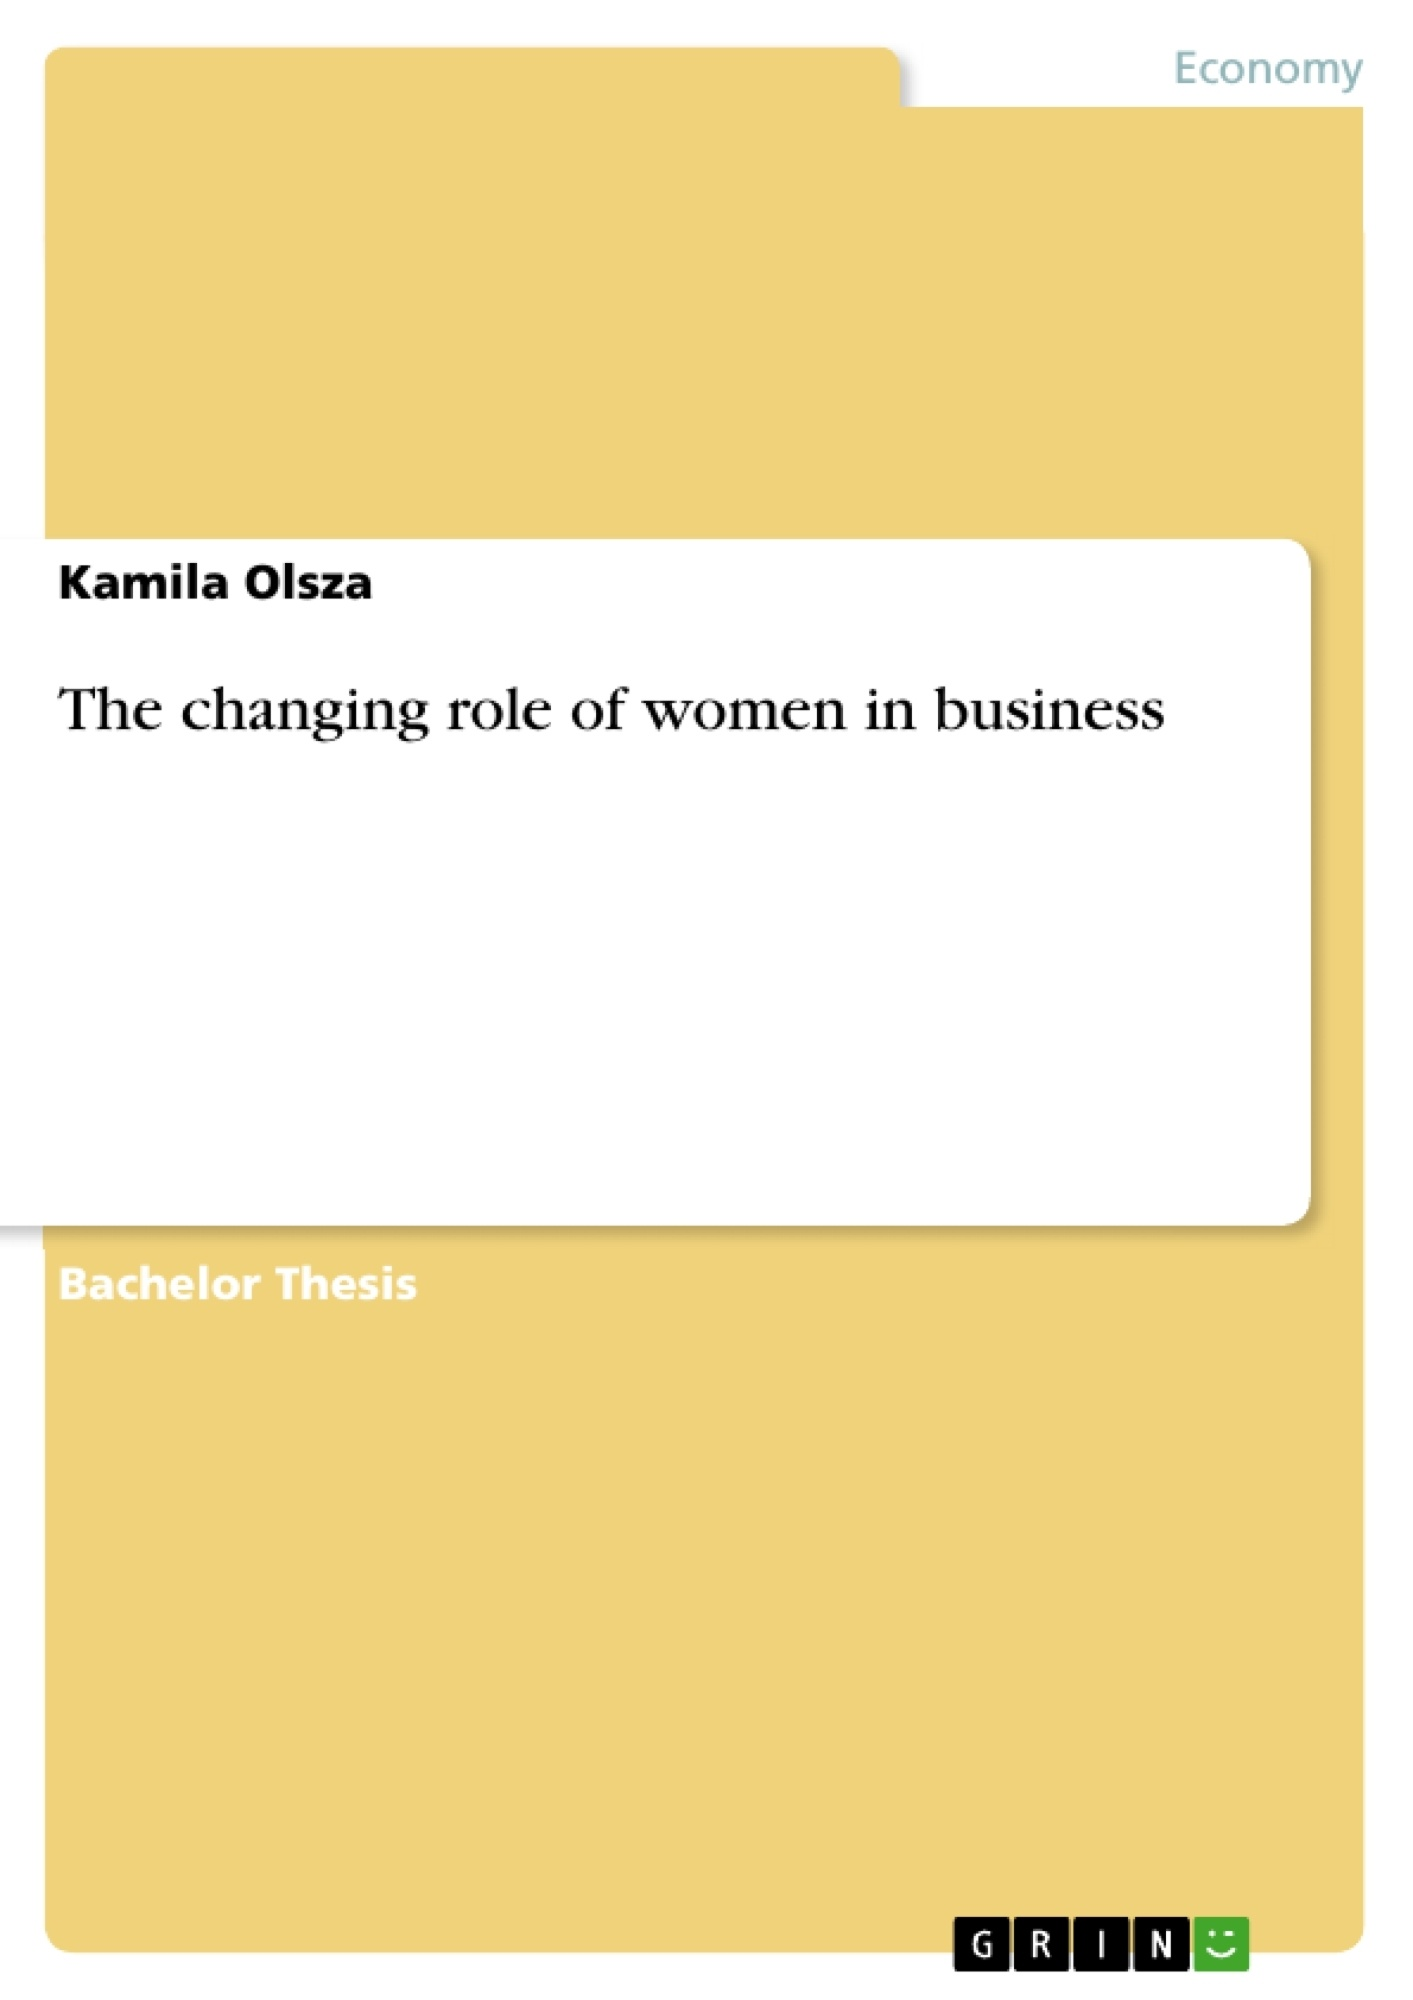 Title: The changing role of women in business